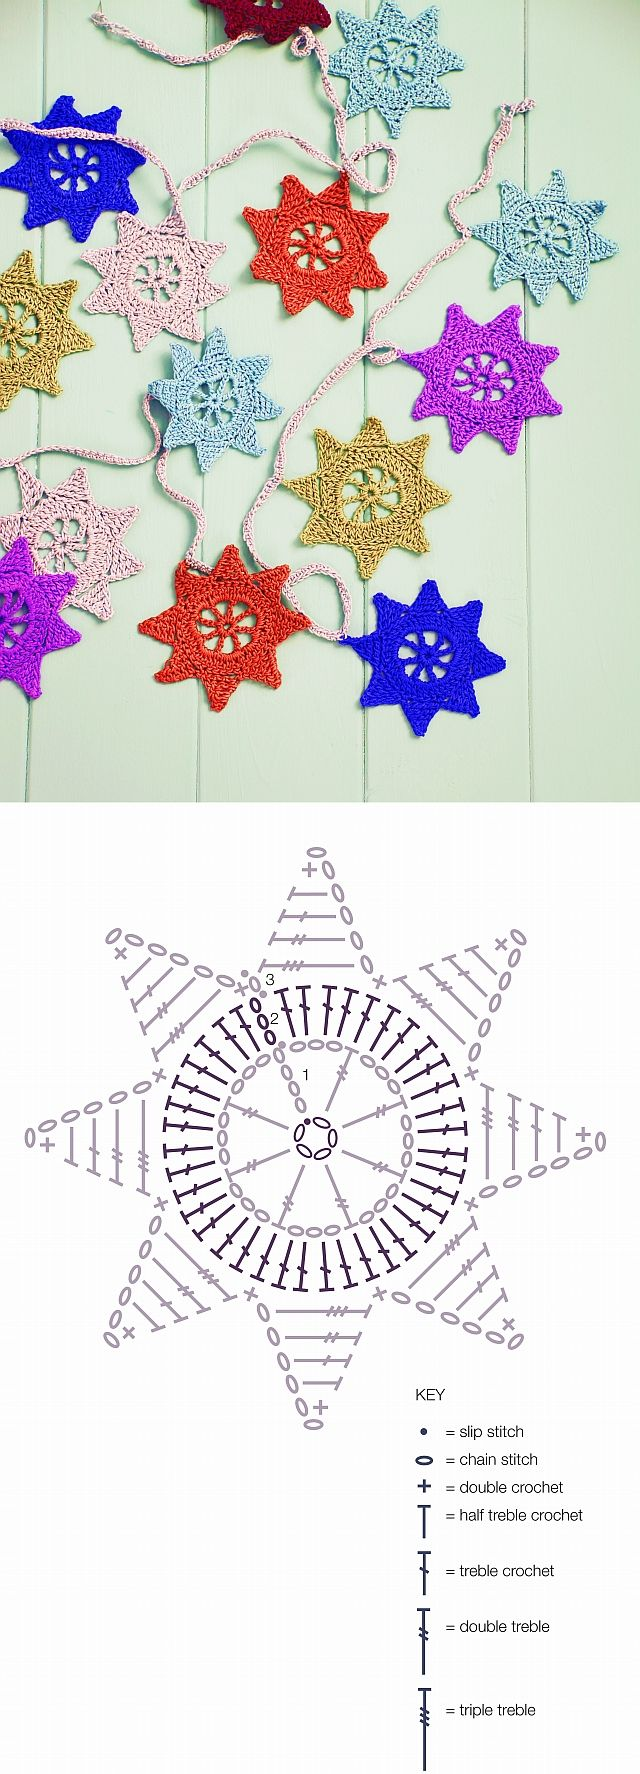 Star garland pattern by Ros Badger; written instructions also